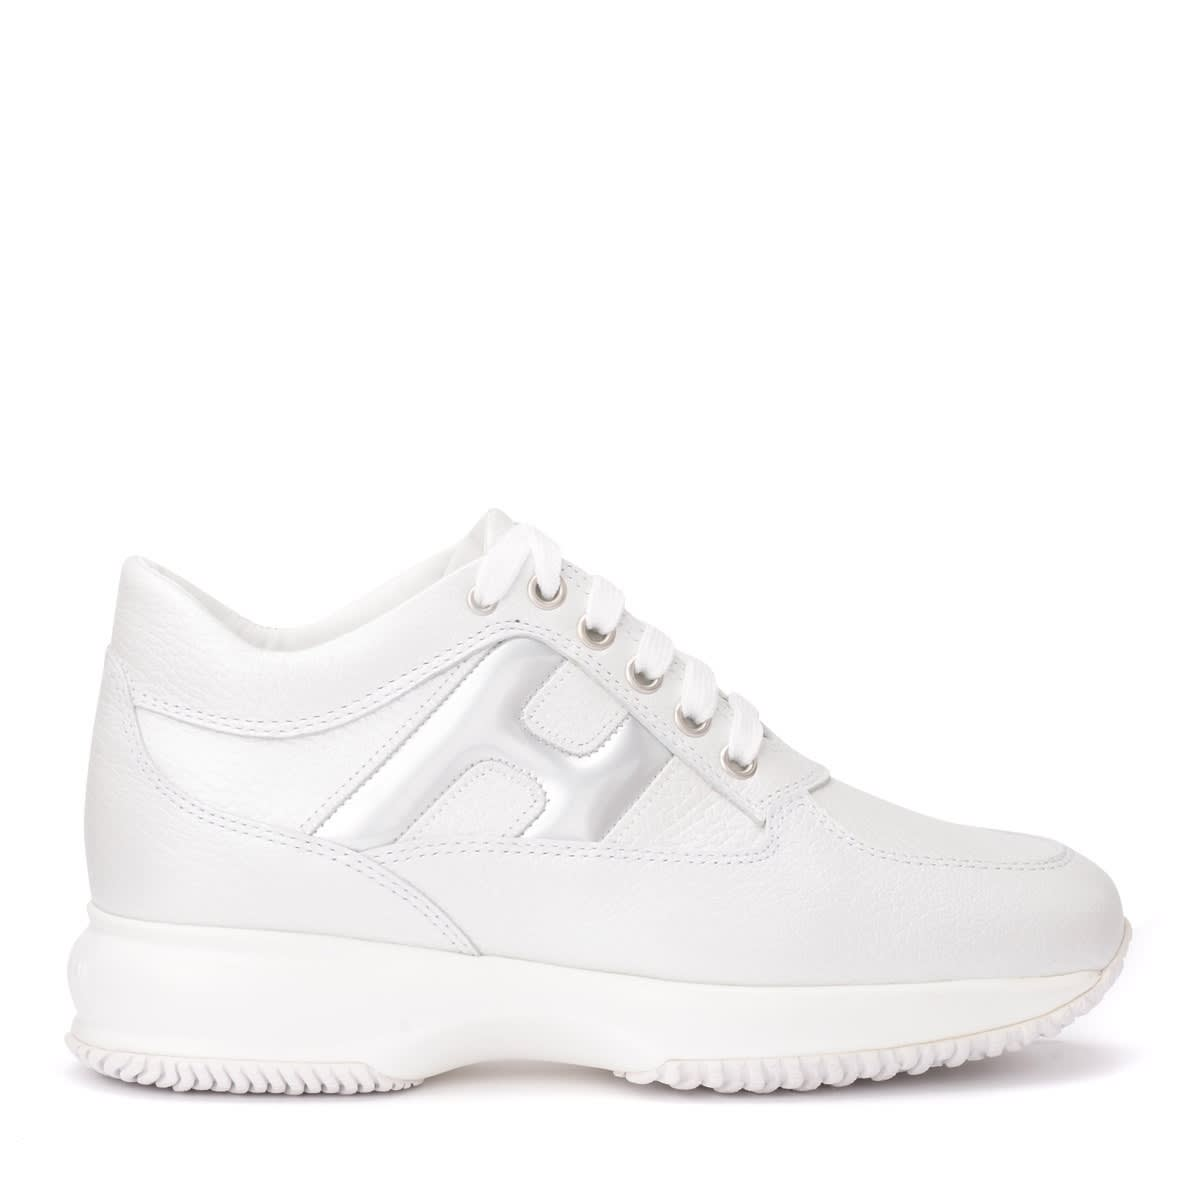 Hogan Hogan Sneaker Interactive Model In White Leather With